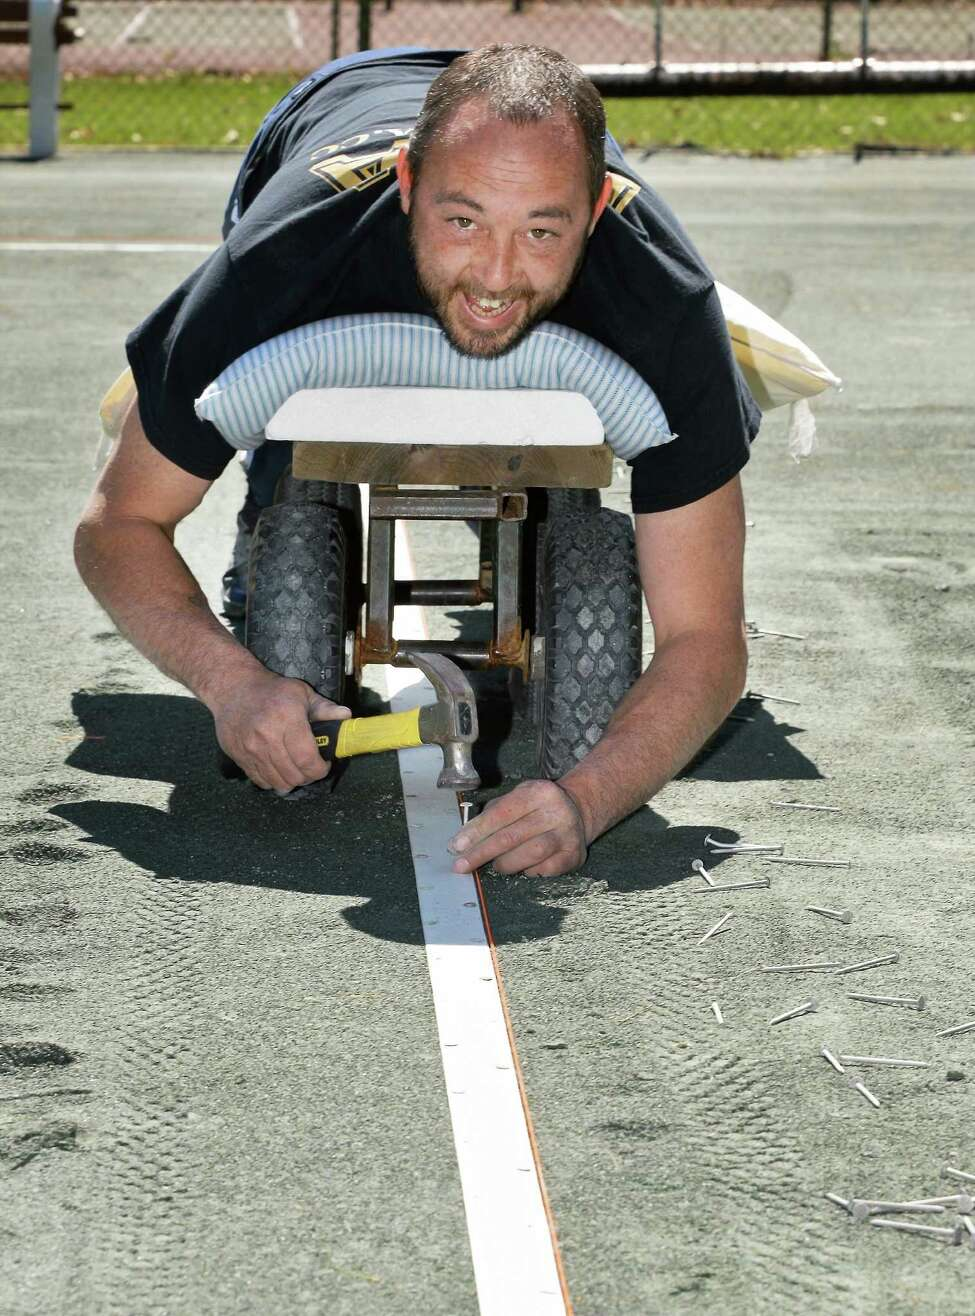 Volunteer Joseph Sweet installs tennis line tape at the Saratoga Spa State Park tennis courts Friday April 15, 2016 in Saratoga Springs, NY. (John Carl D'Annibale / Times Union)